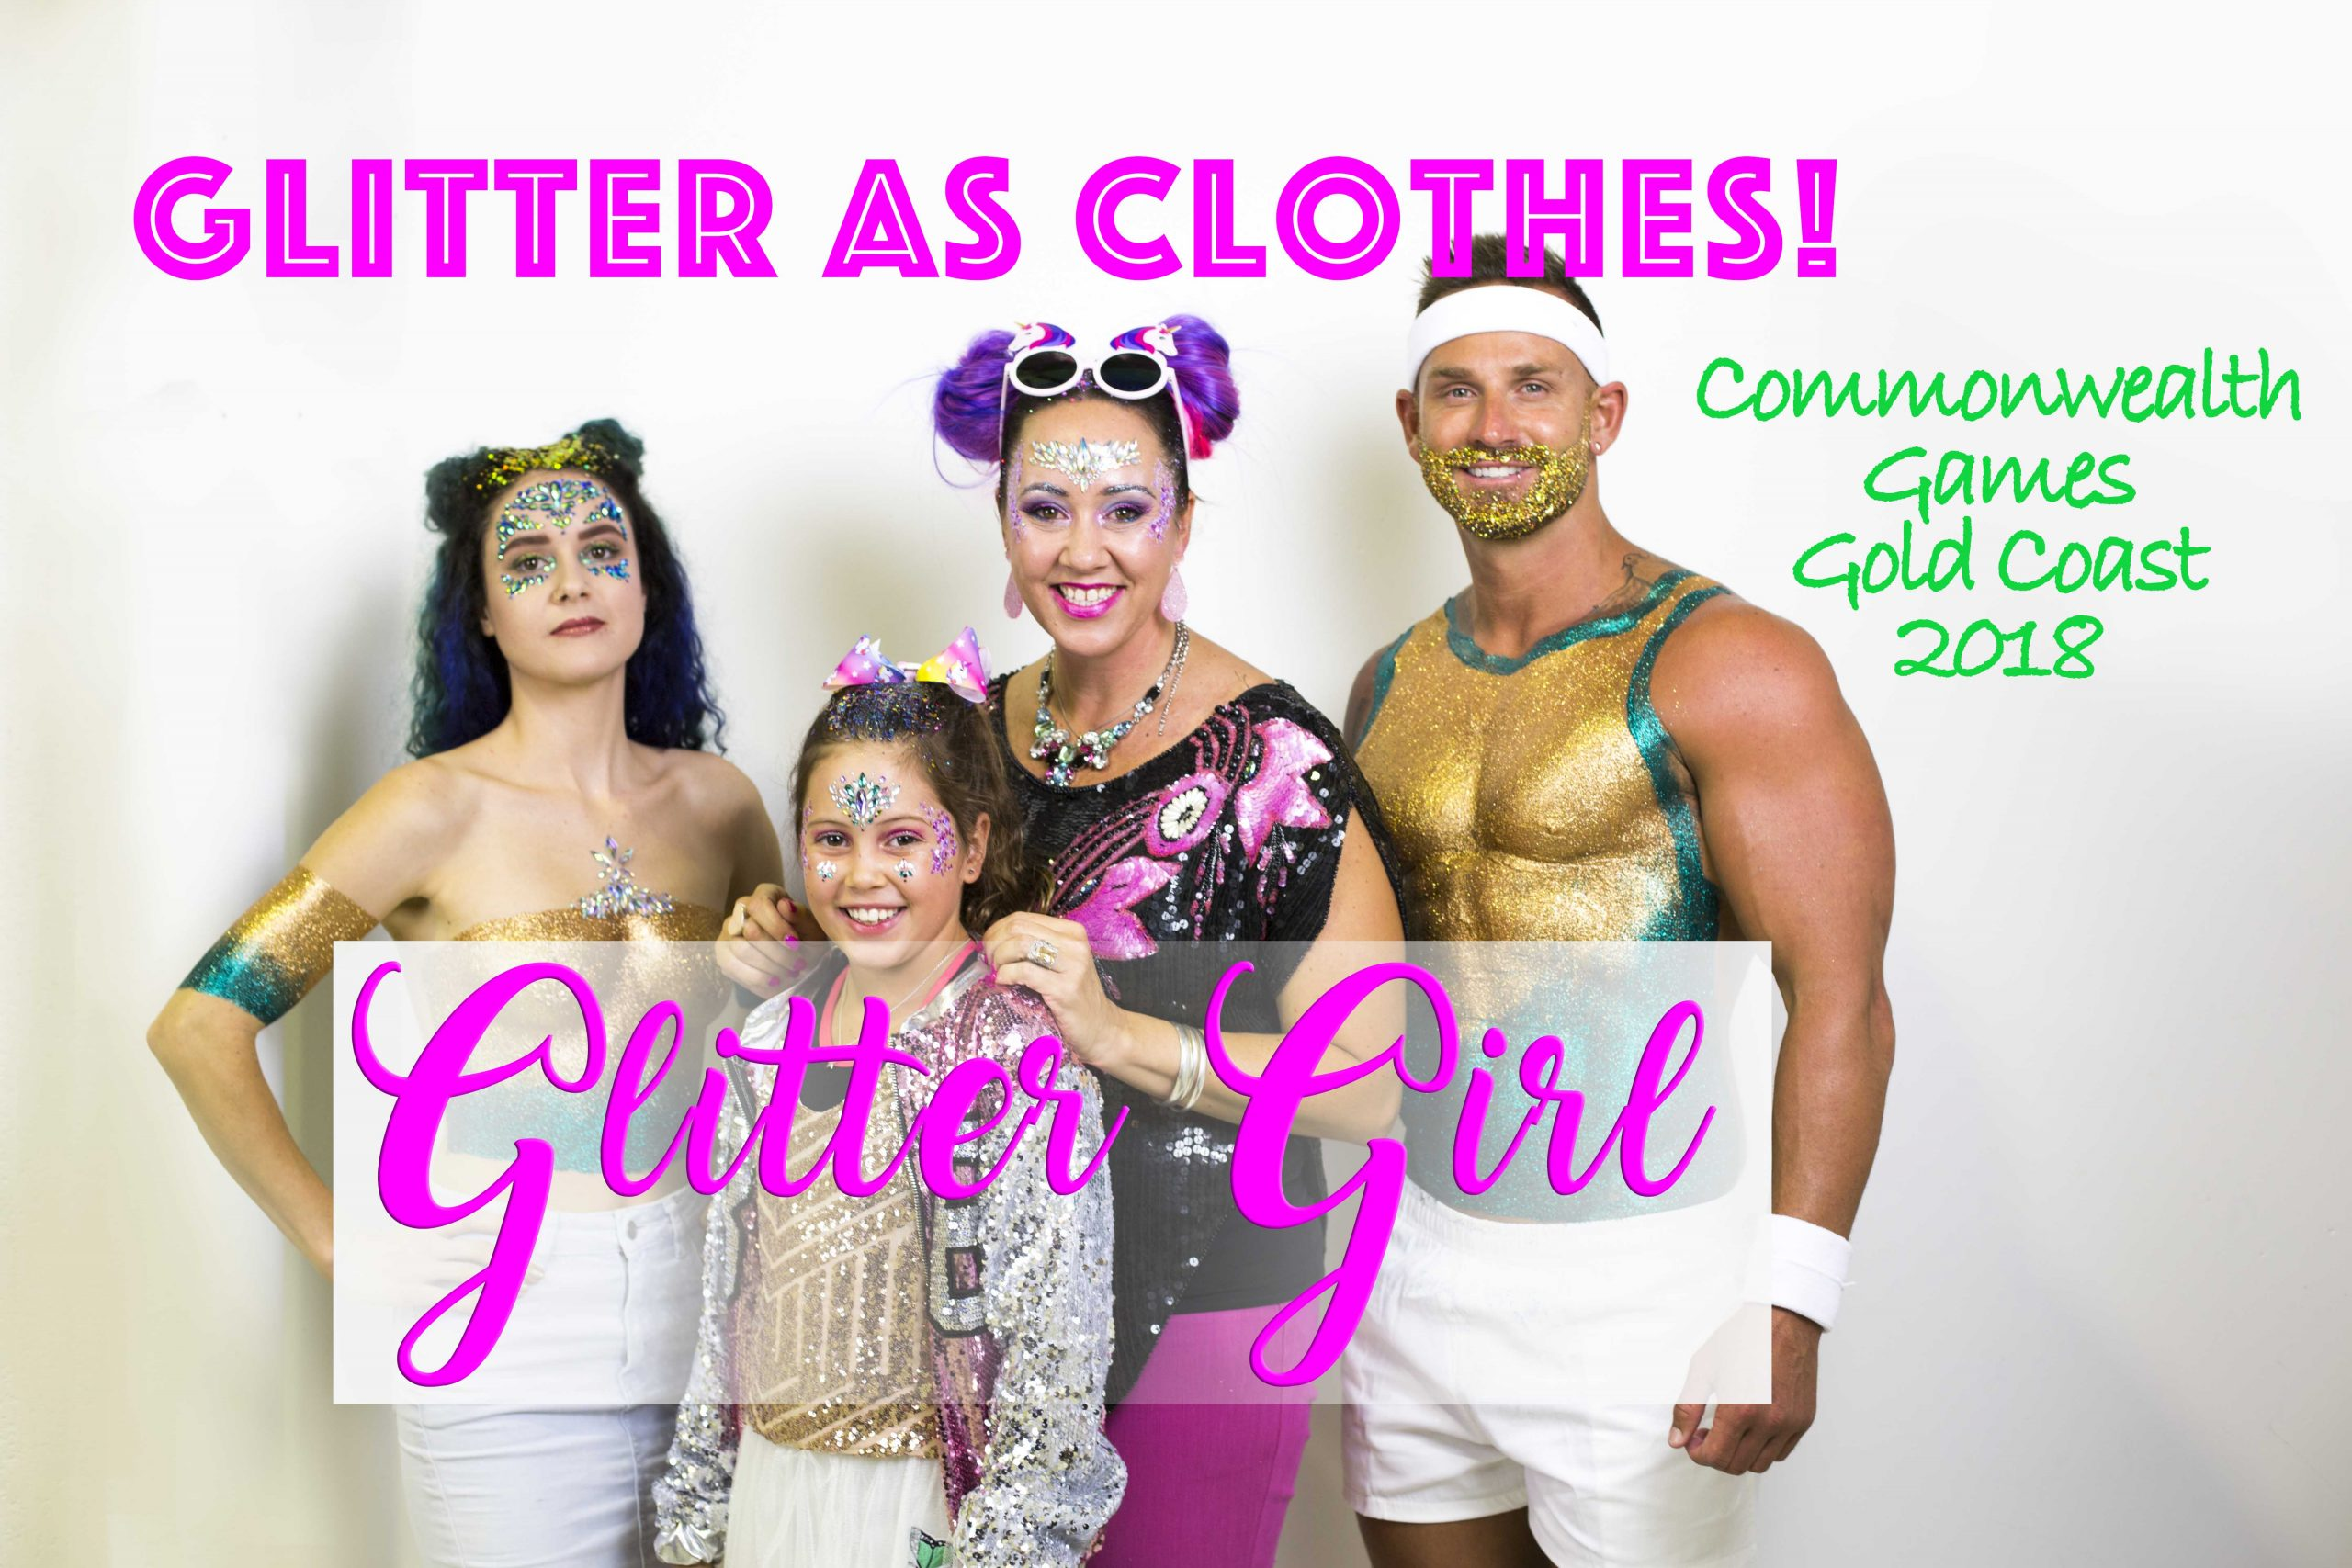 How to Wear Glitter as Clothes! Aussie Glitter Shirts – Commonwealth Games Gold Coast 2018